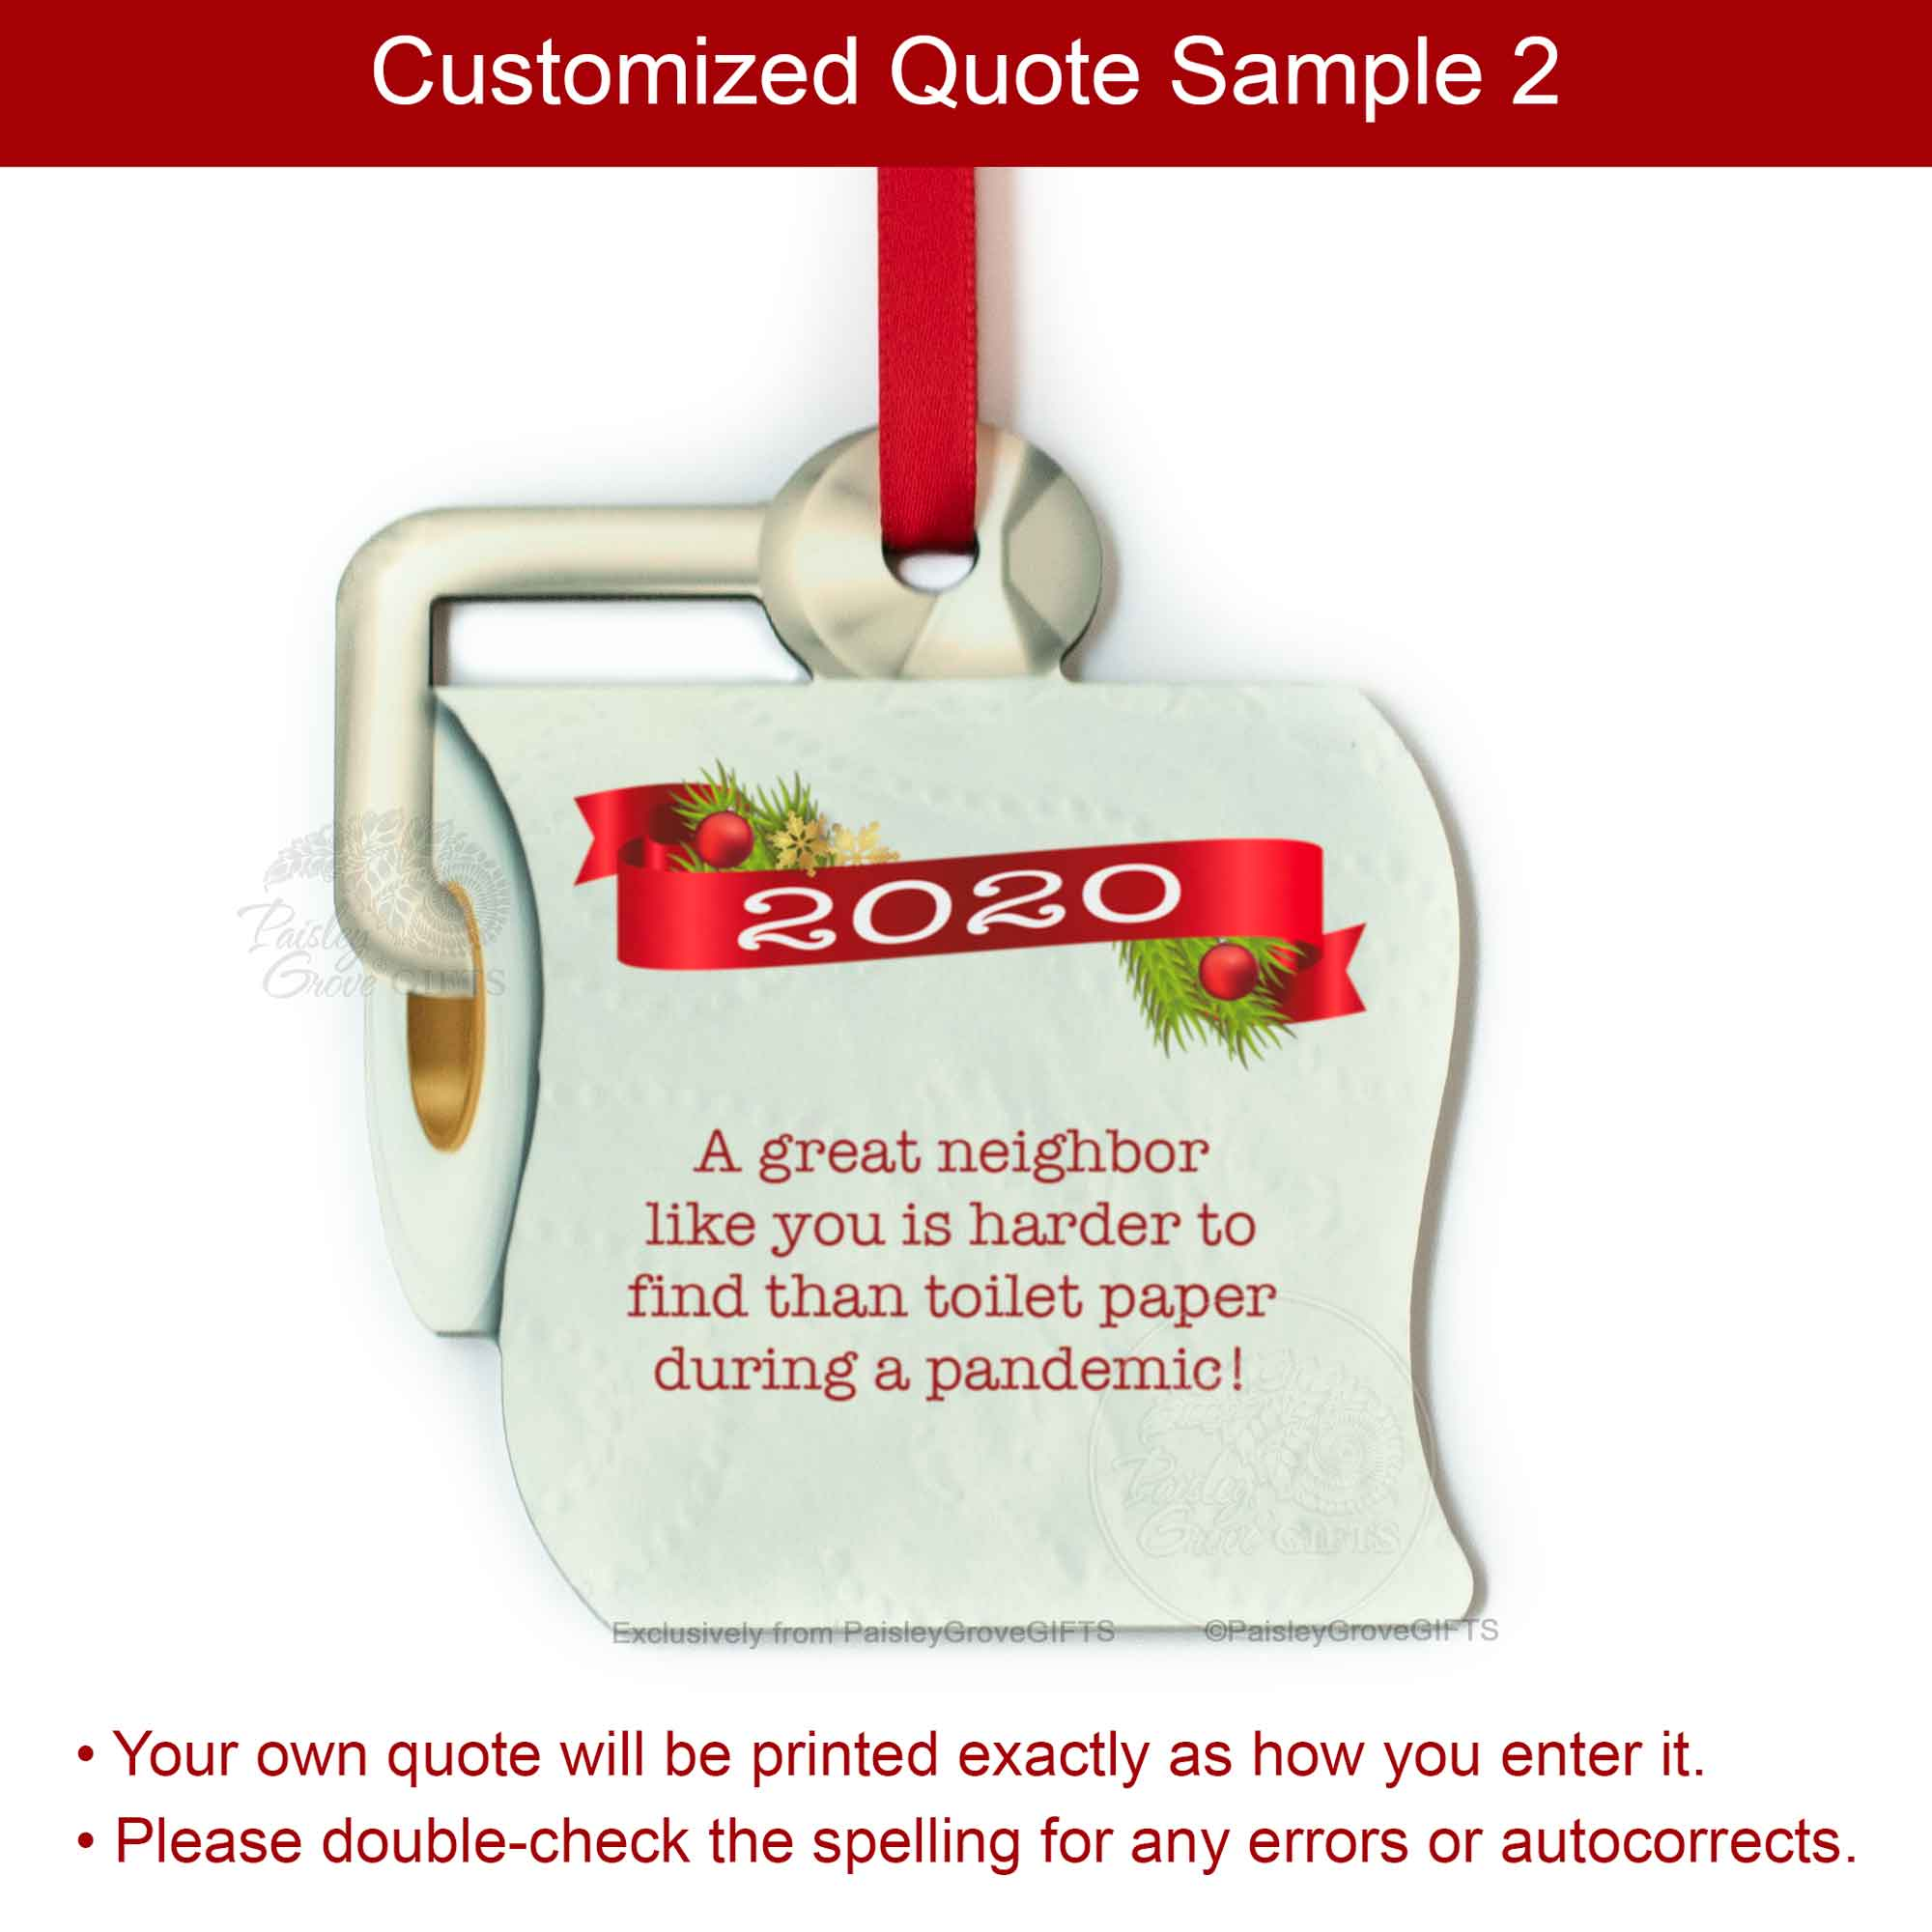 Copyright PaisleyGroveGIFTS S525p Funny Toilet Paper Christmas Ornament 2020 Sample Quote 2